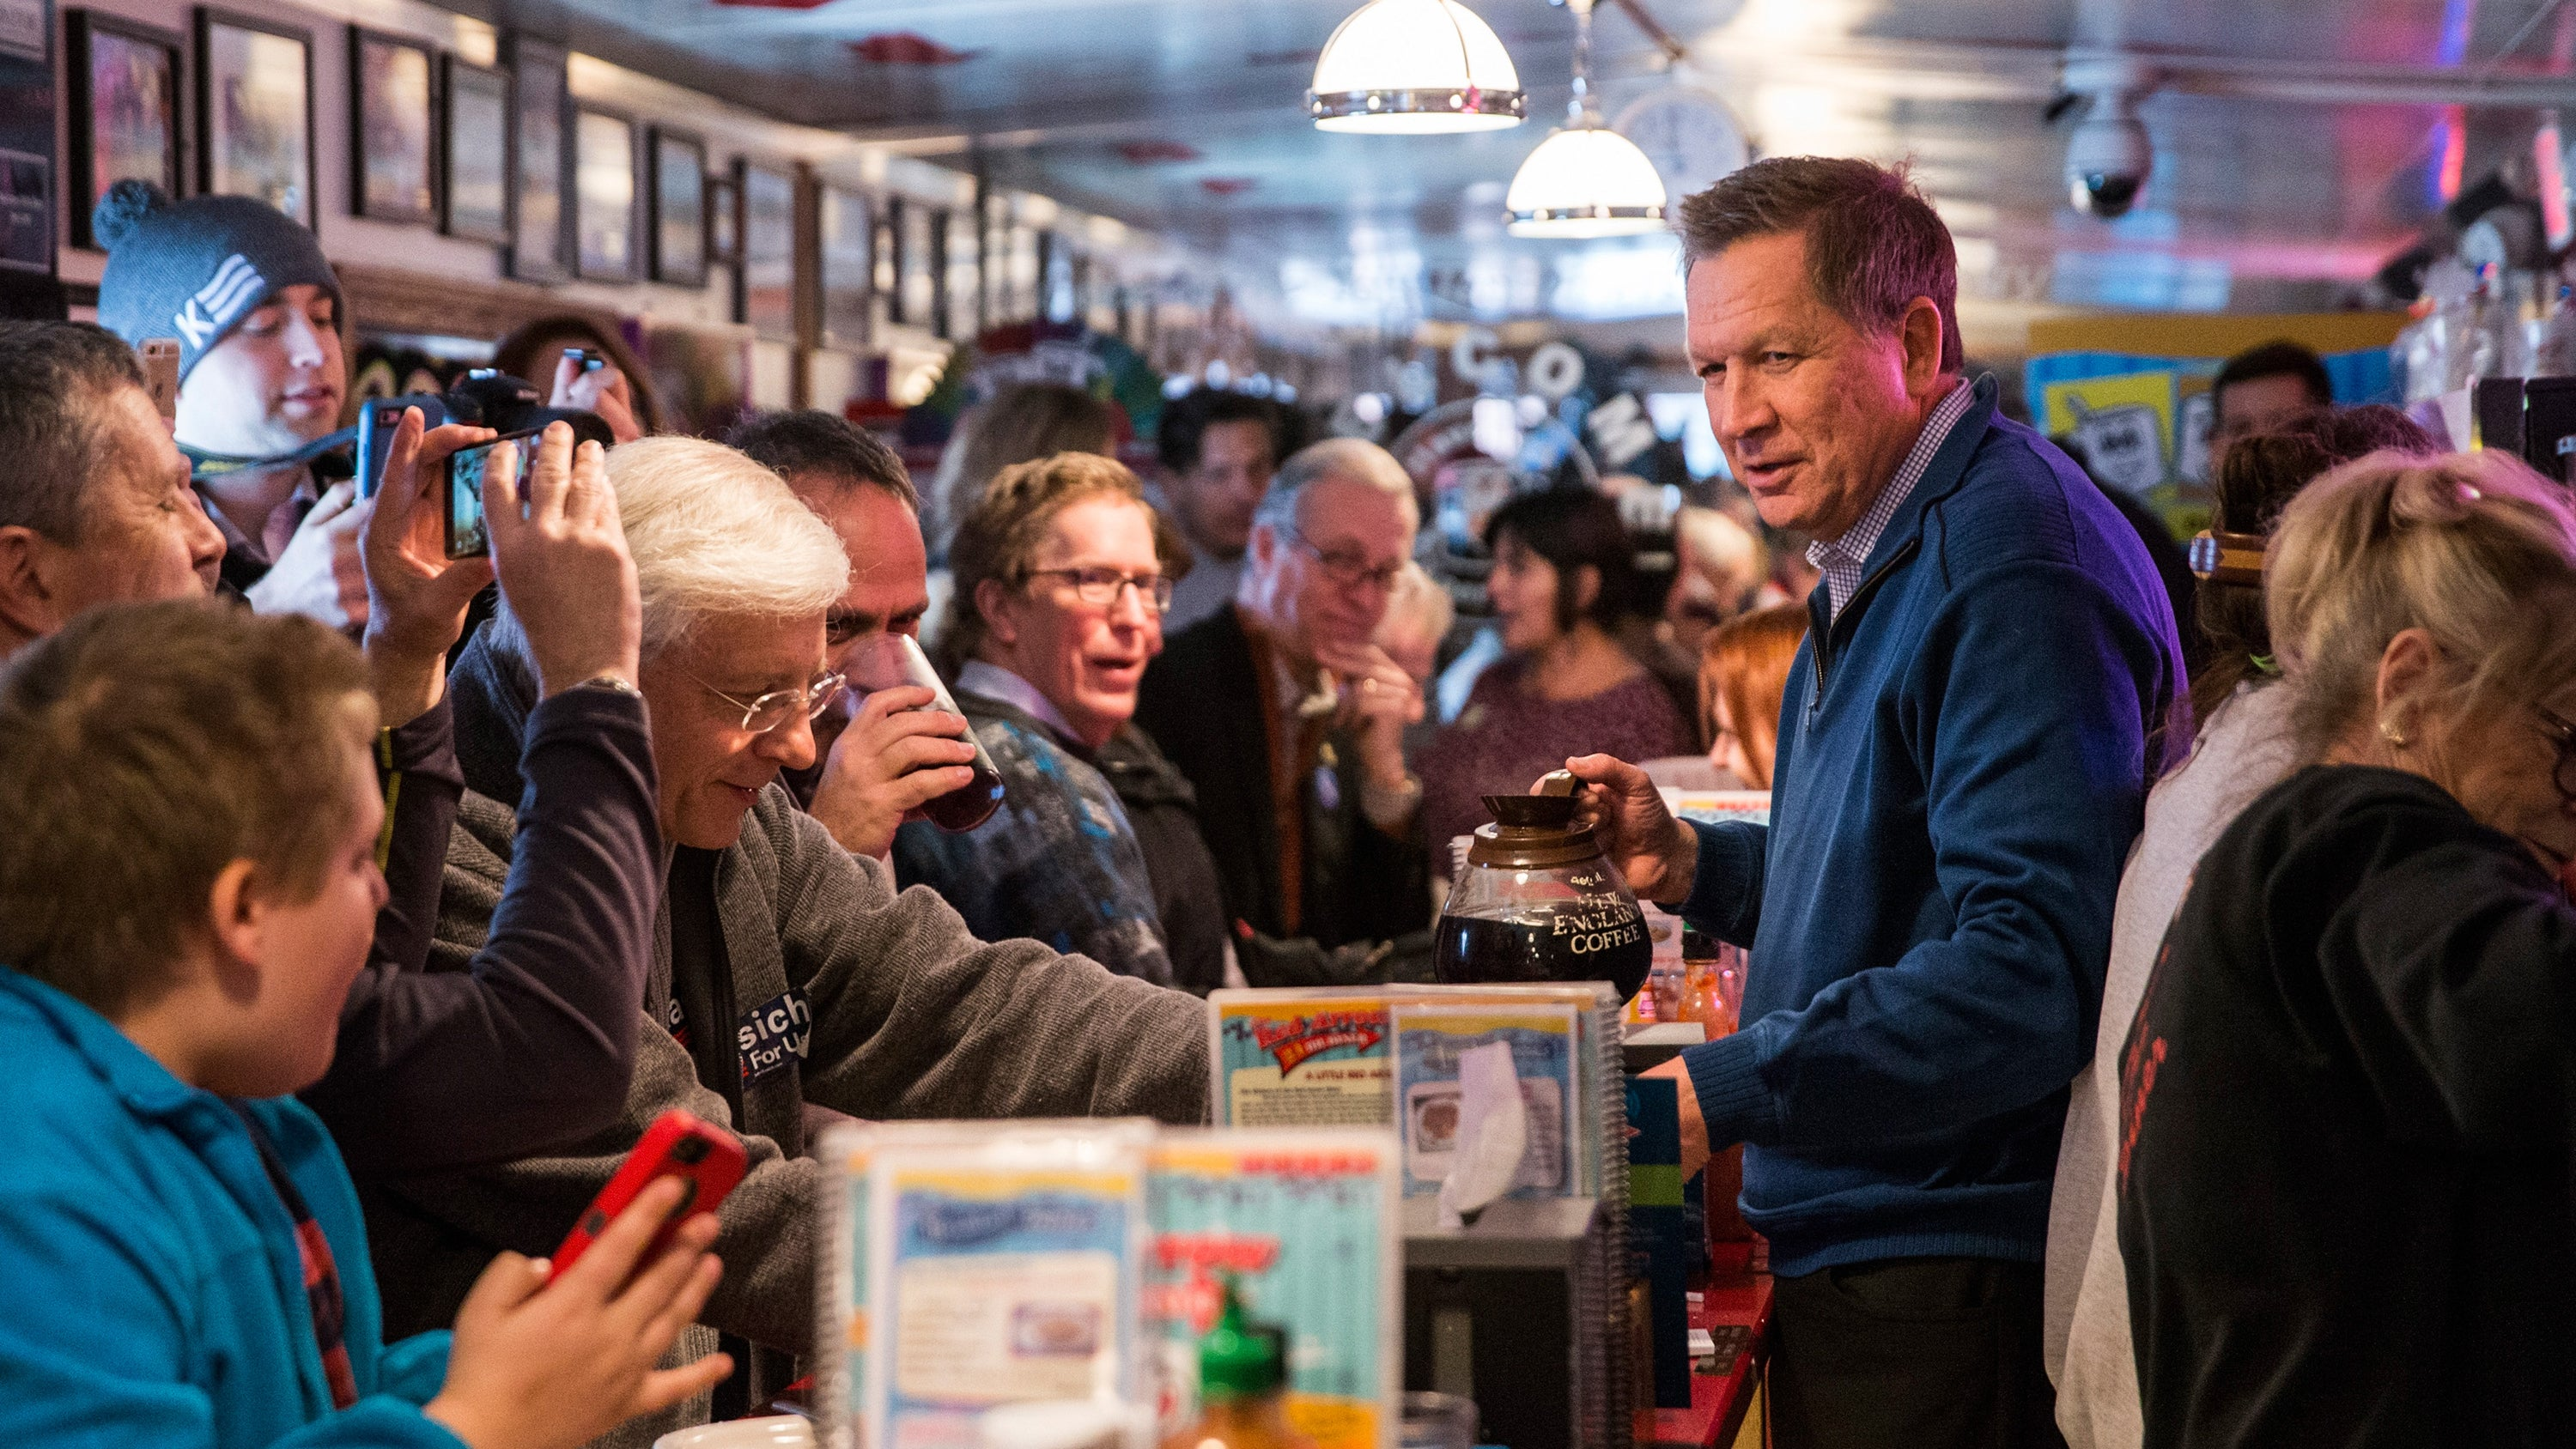 Kasich serves coffee to patrons at the Red Arrow Diner in Manchester, New Hampshire.